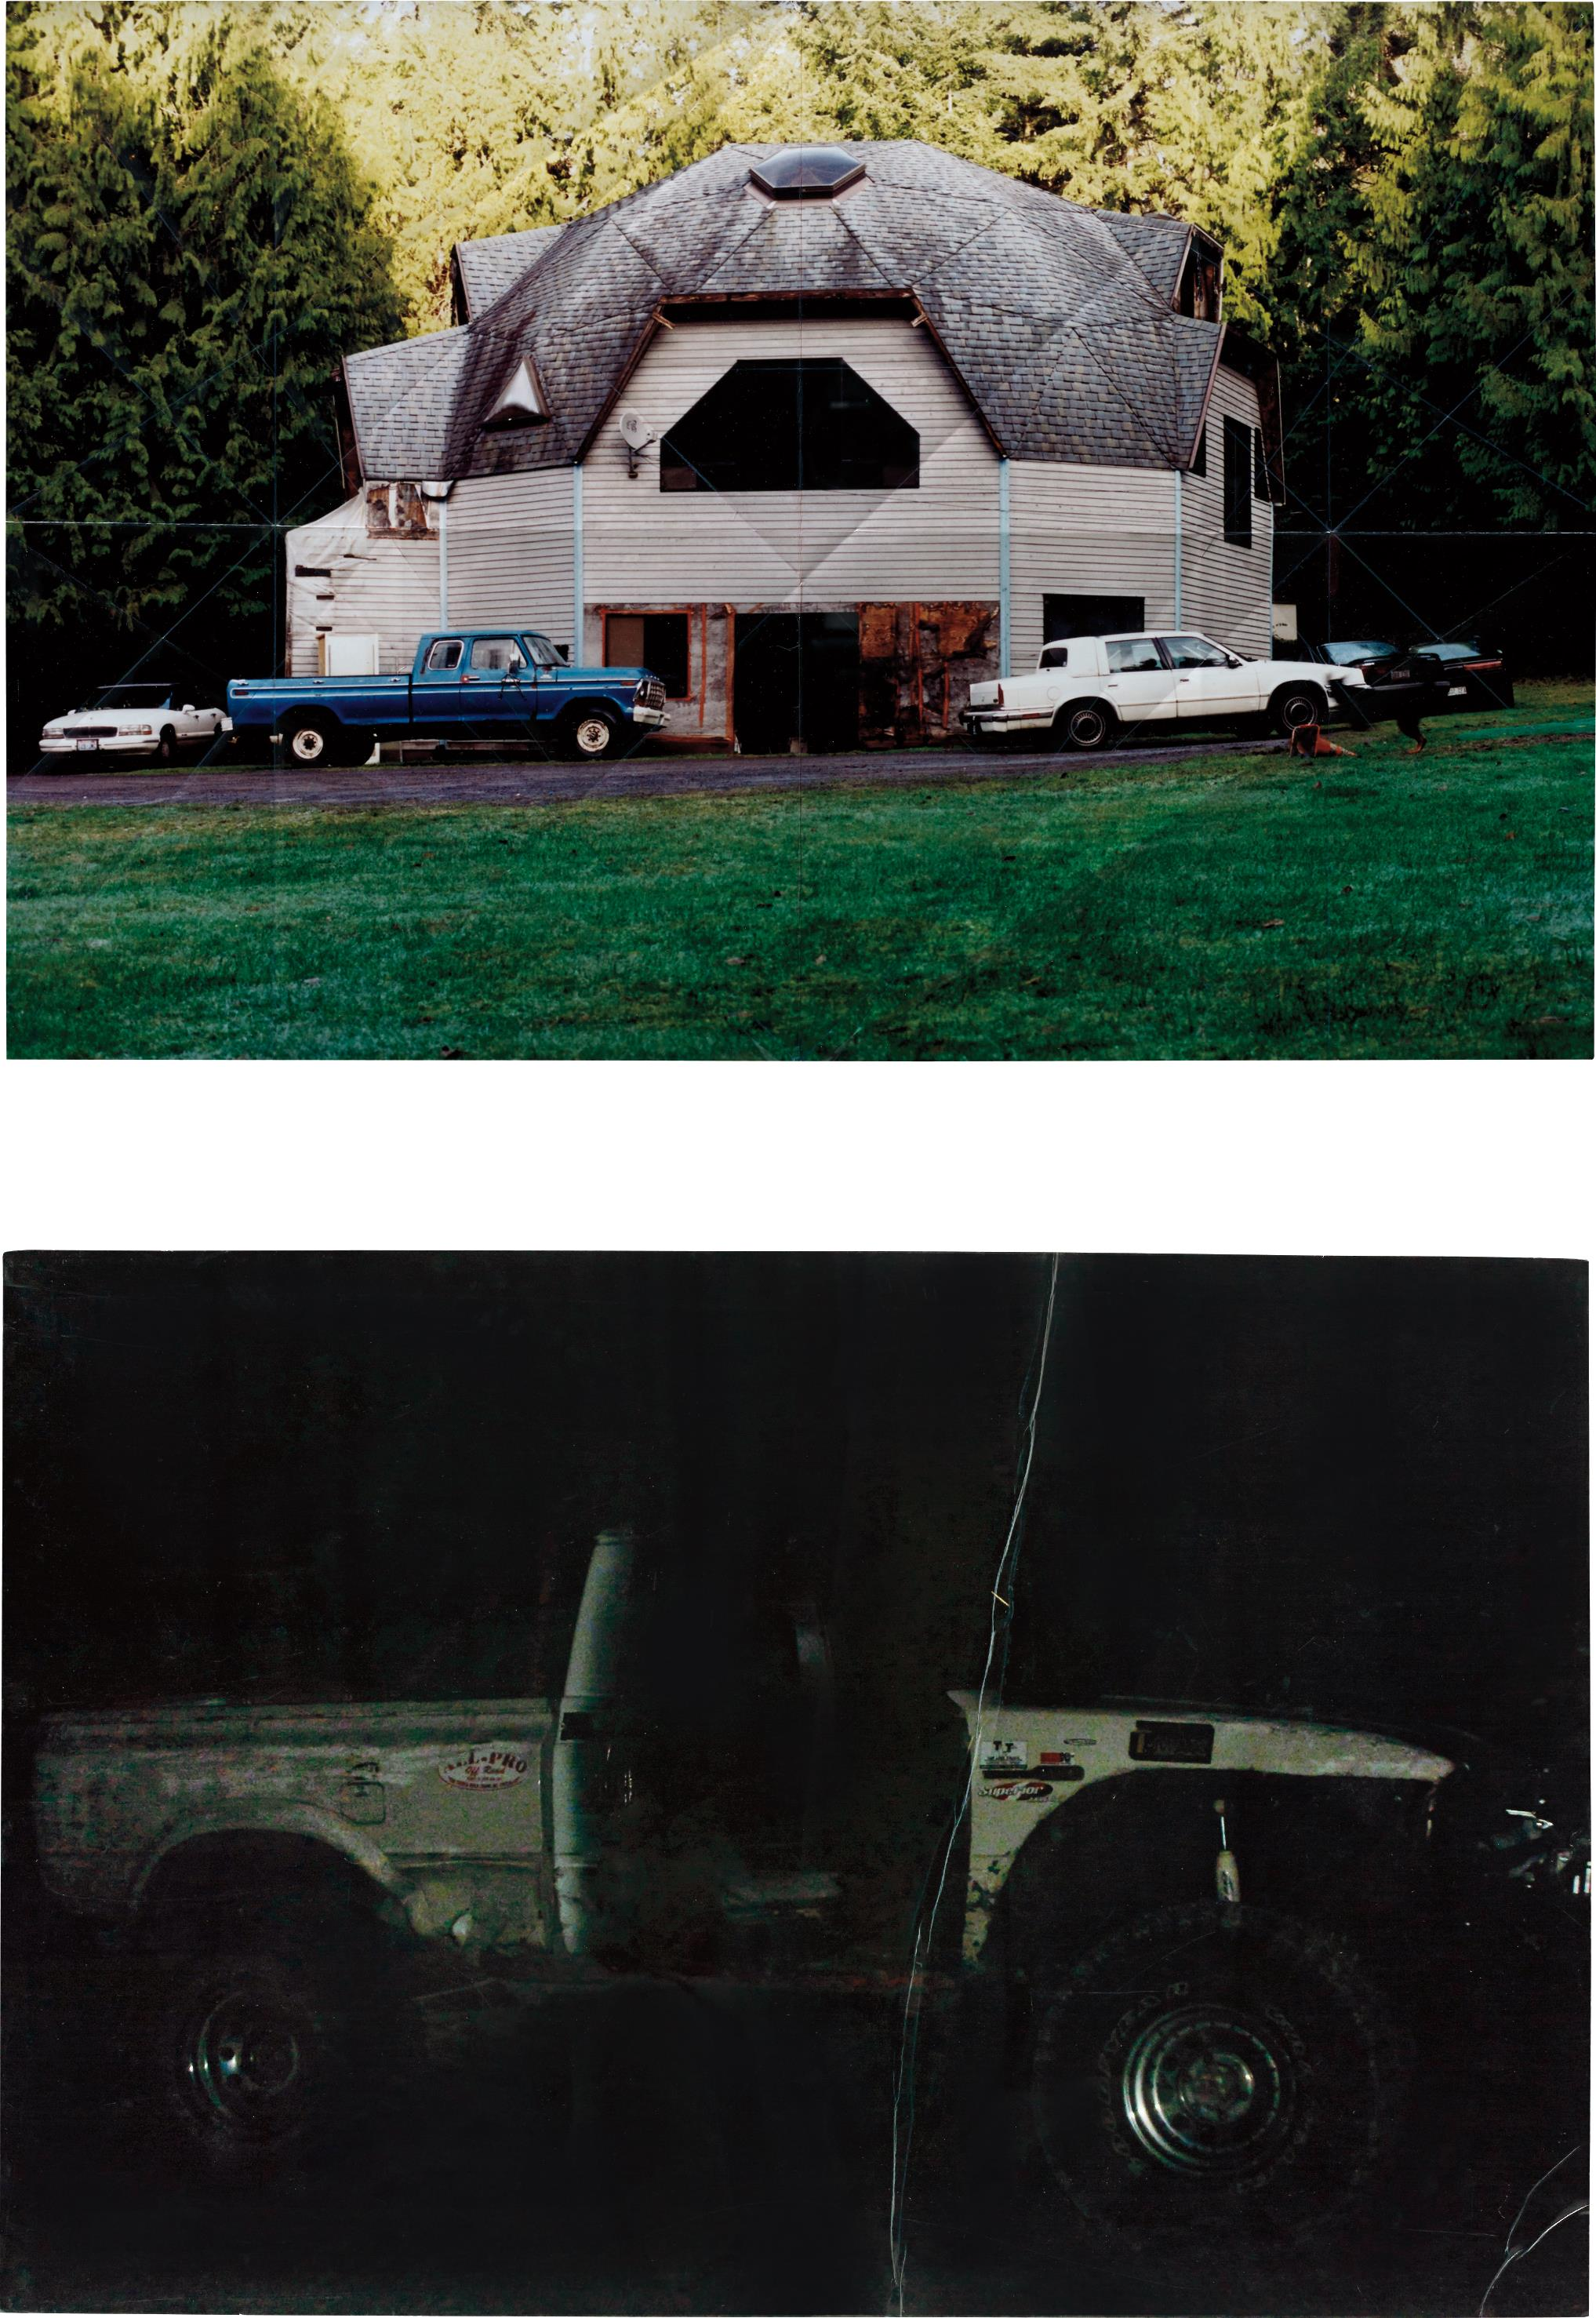 Oscar Tuazon-Two works: (i) Geodesic Dome House; (ii) Off Road-2007